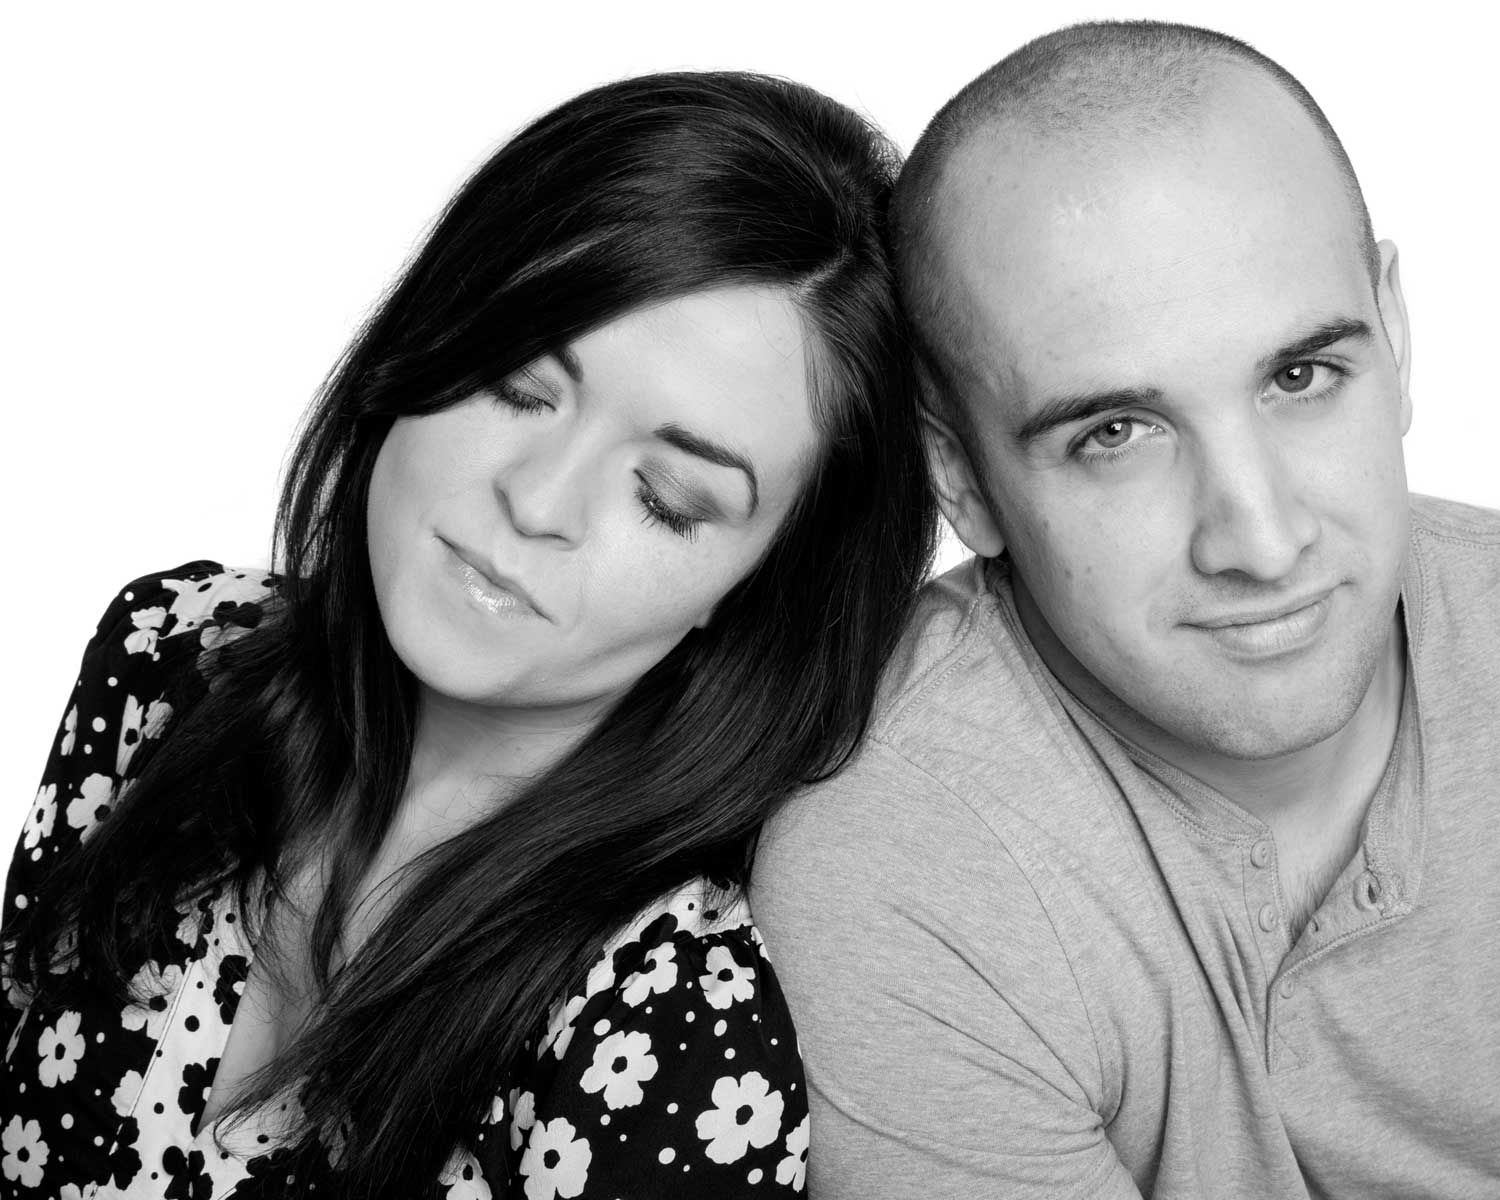 15-Home-Shoot-Couple-Black-White-Sitting-Philip-Murray-Photography-Dublin